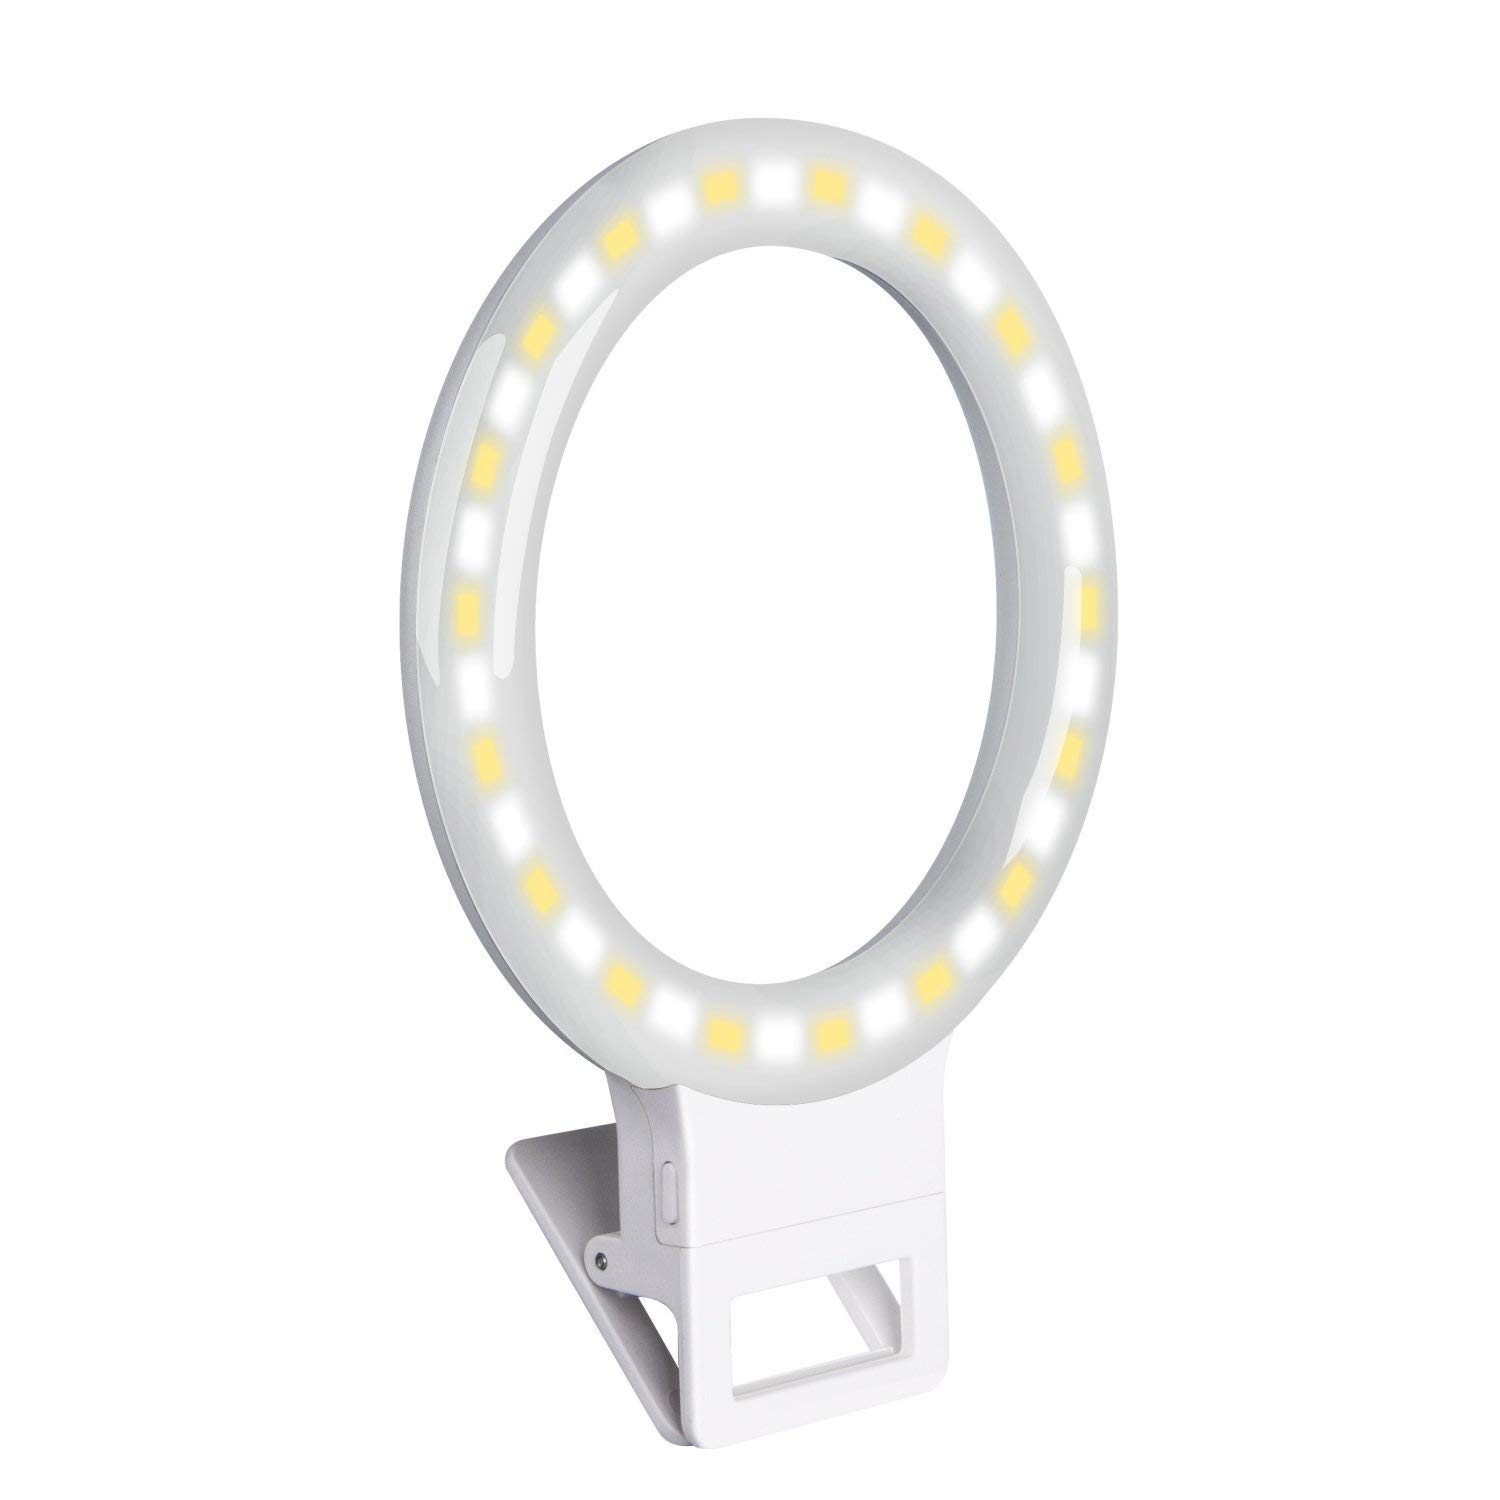 WILTEEXS Selfie Ring Light [Rechargable Battery] a Mini 36 led Cell Phone Ring Light Clip for iPhone Phone Camera Photography [Cold and Warm Light] Selfie lamp White